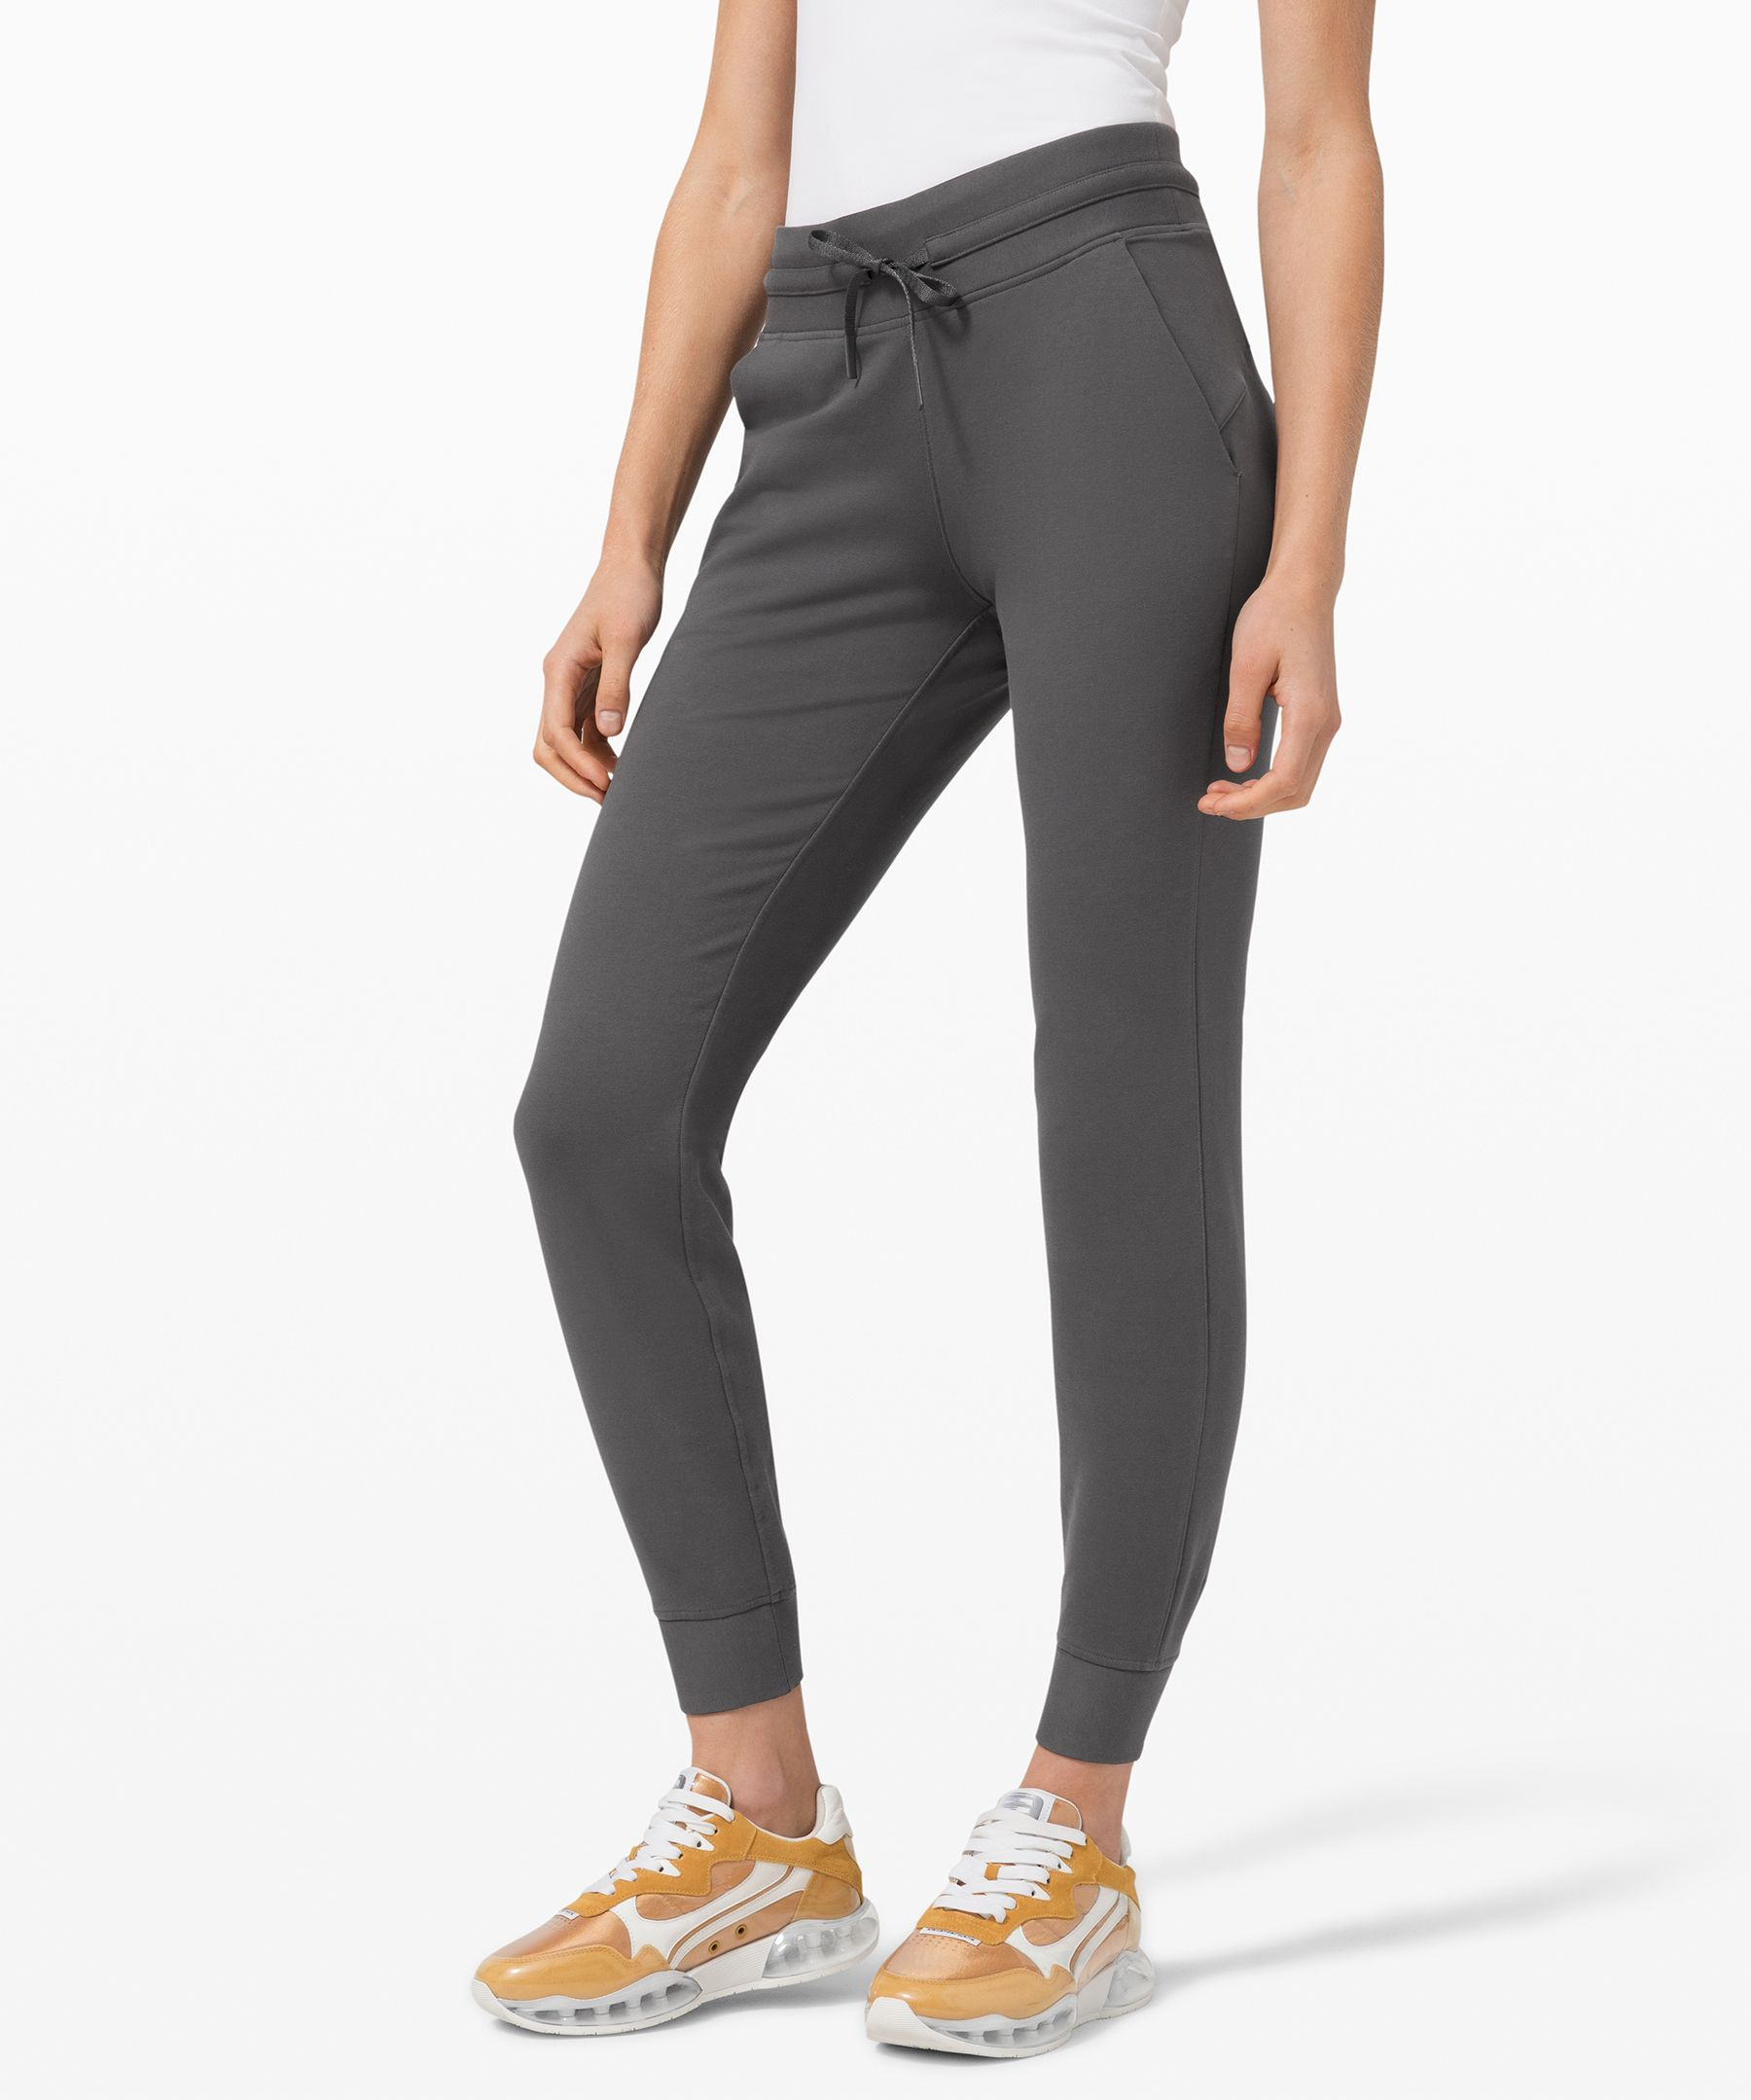 Cozy, fleecy, cool. Chill out in comfort in these stretchy joggers.